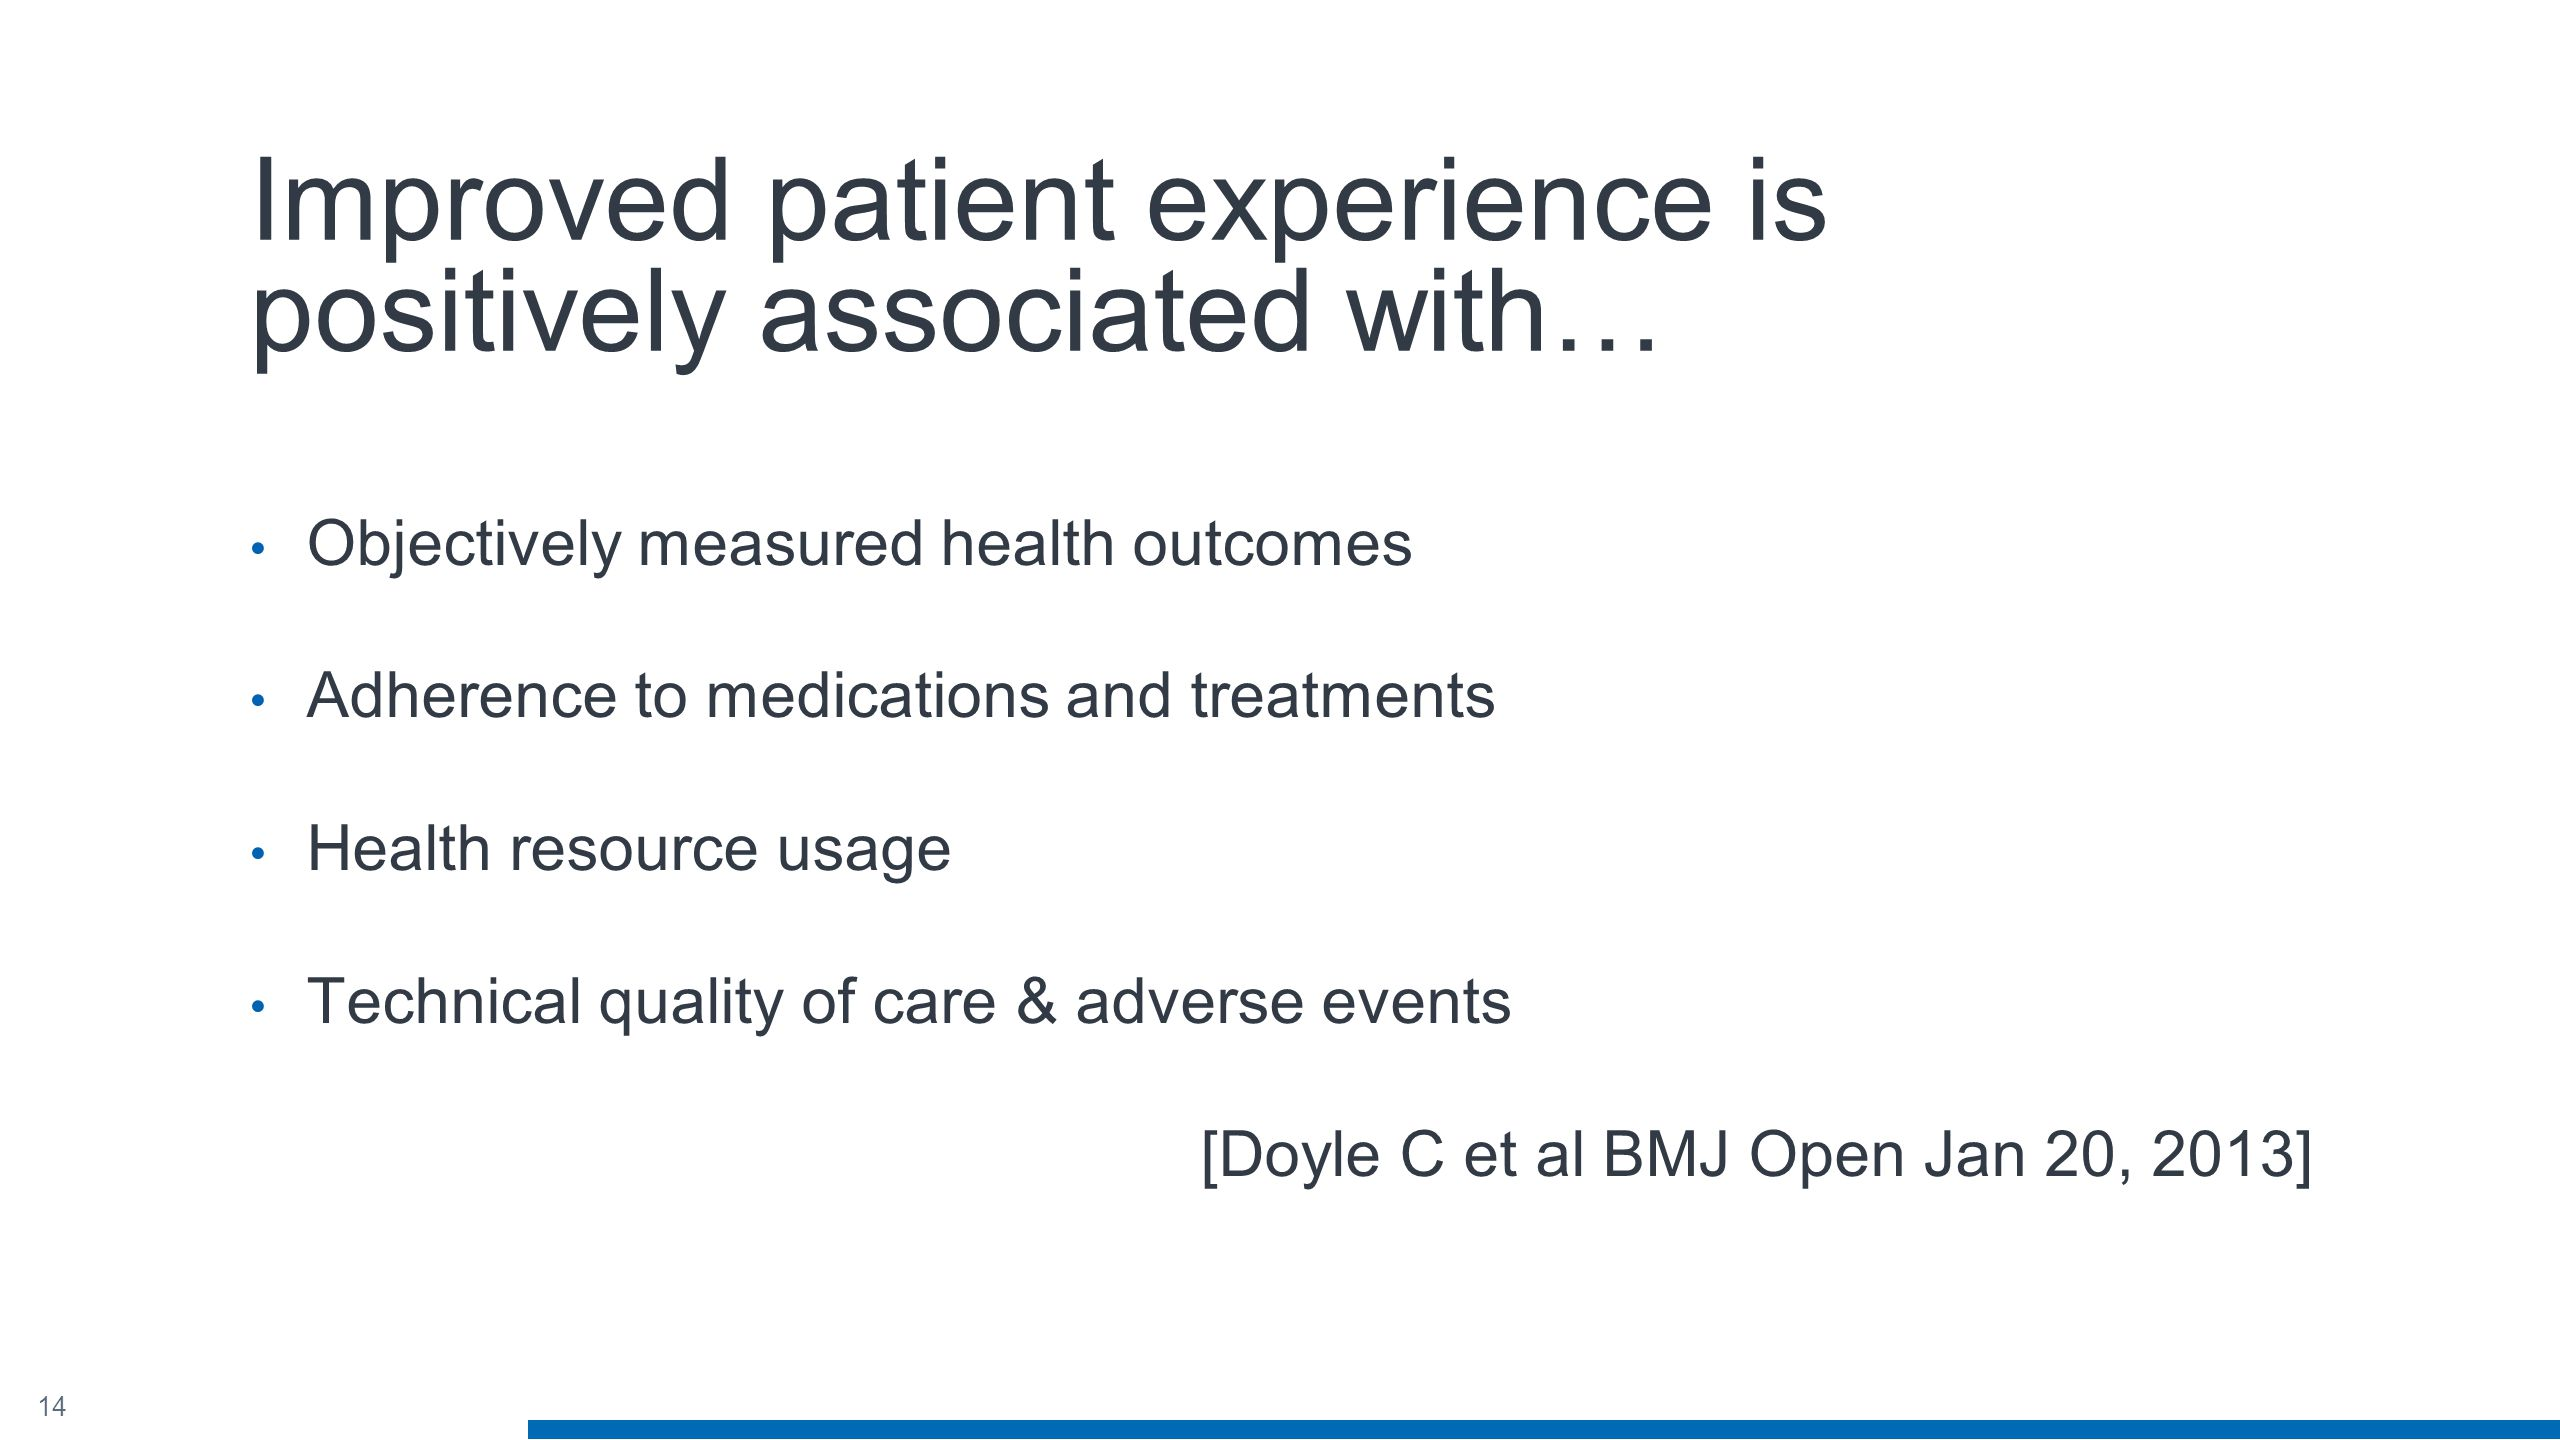 14 Improved patient experience is positively associated with… Objectively measured health outcomes Adherence to medications and treatments Health resource usage Technical quality of care & adverse events [Doyle C et al BMJ Open Jan 20, 2013]